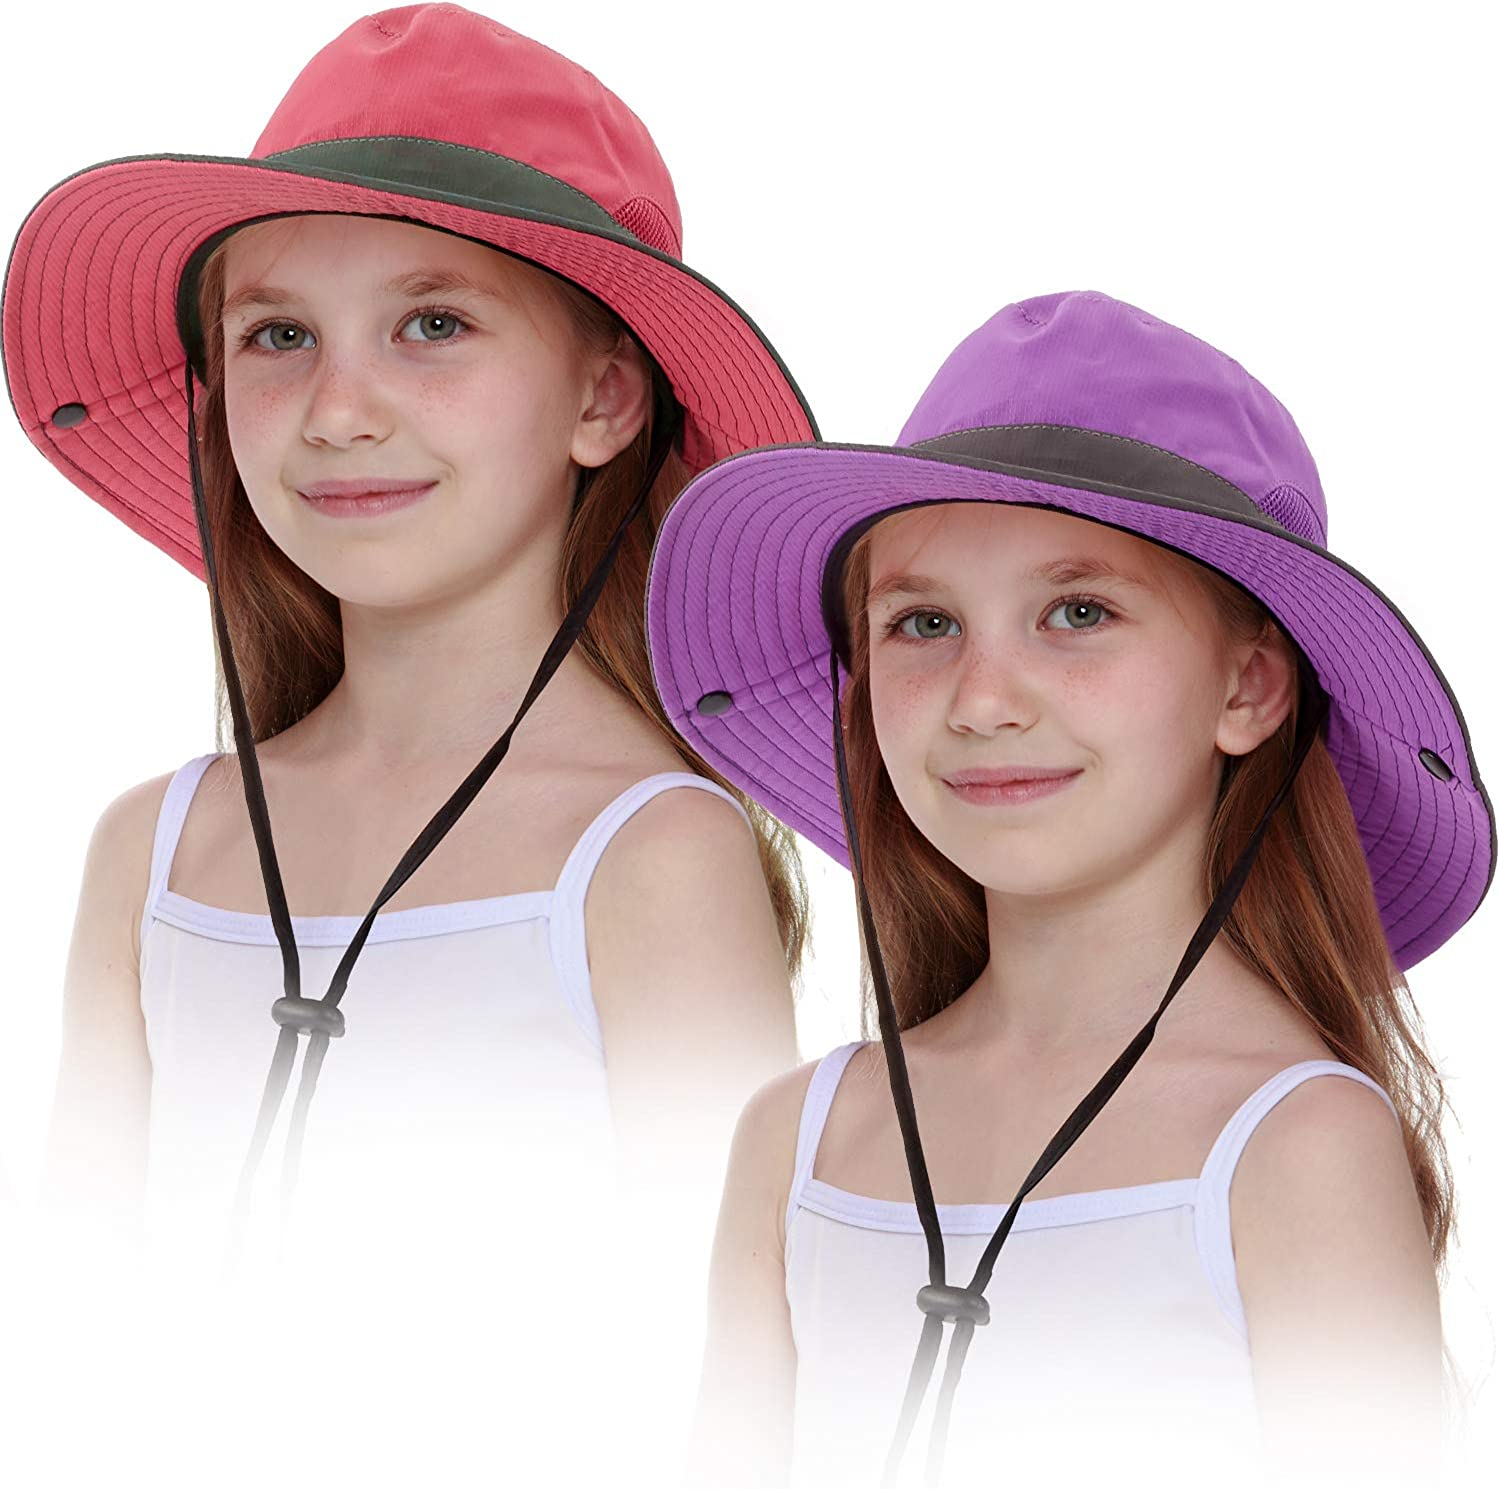 2 Pieces Year-end gift shop Kids Sun Hat Wide Brim UV w Protection Cap Foldable